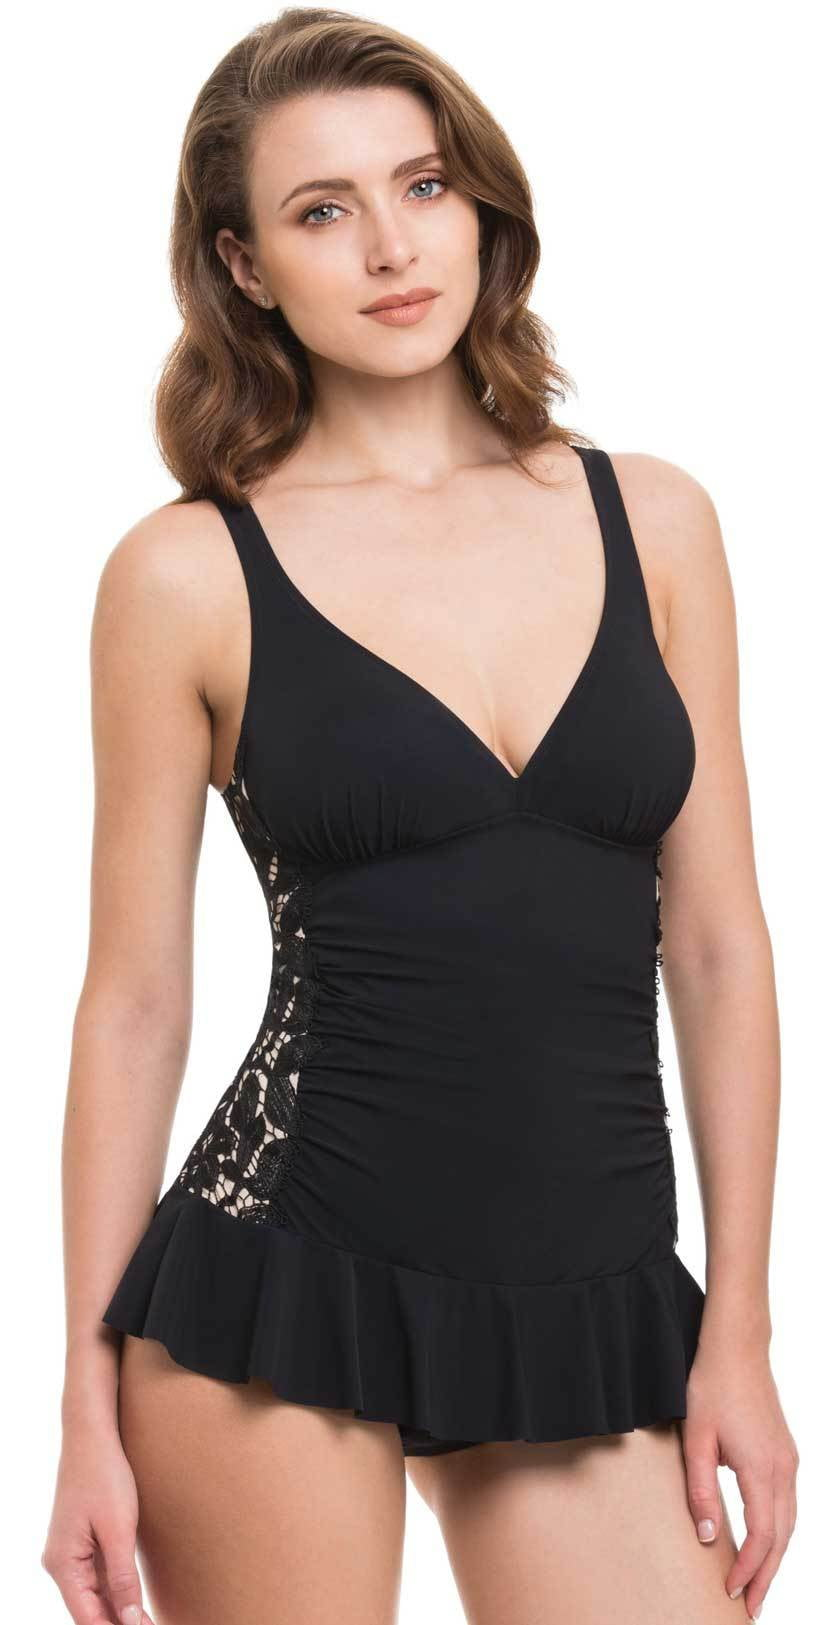 Profile by Gottex Allure Skirted One Piece In Black E846-2D05-001: